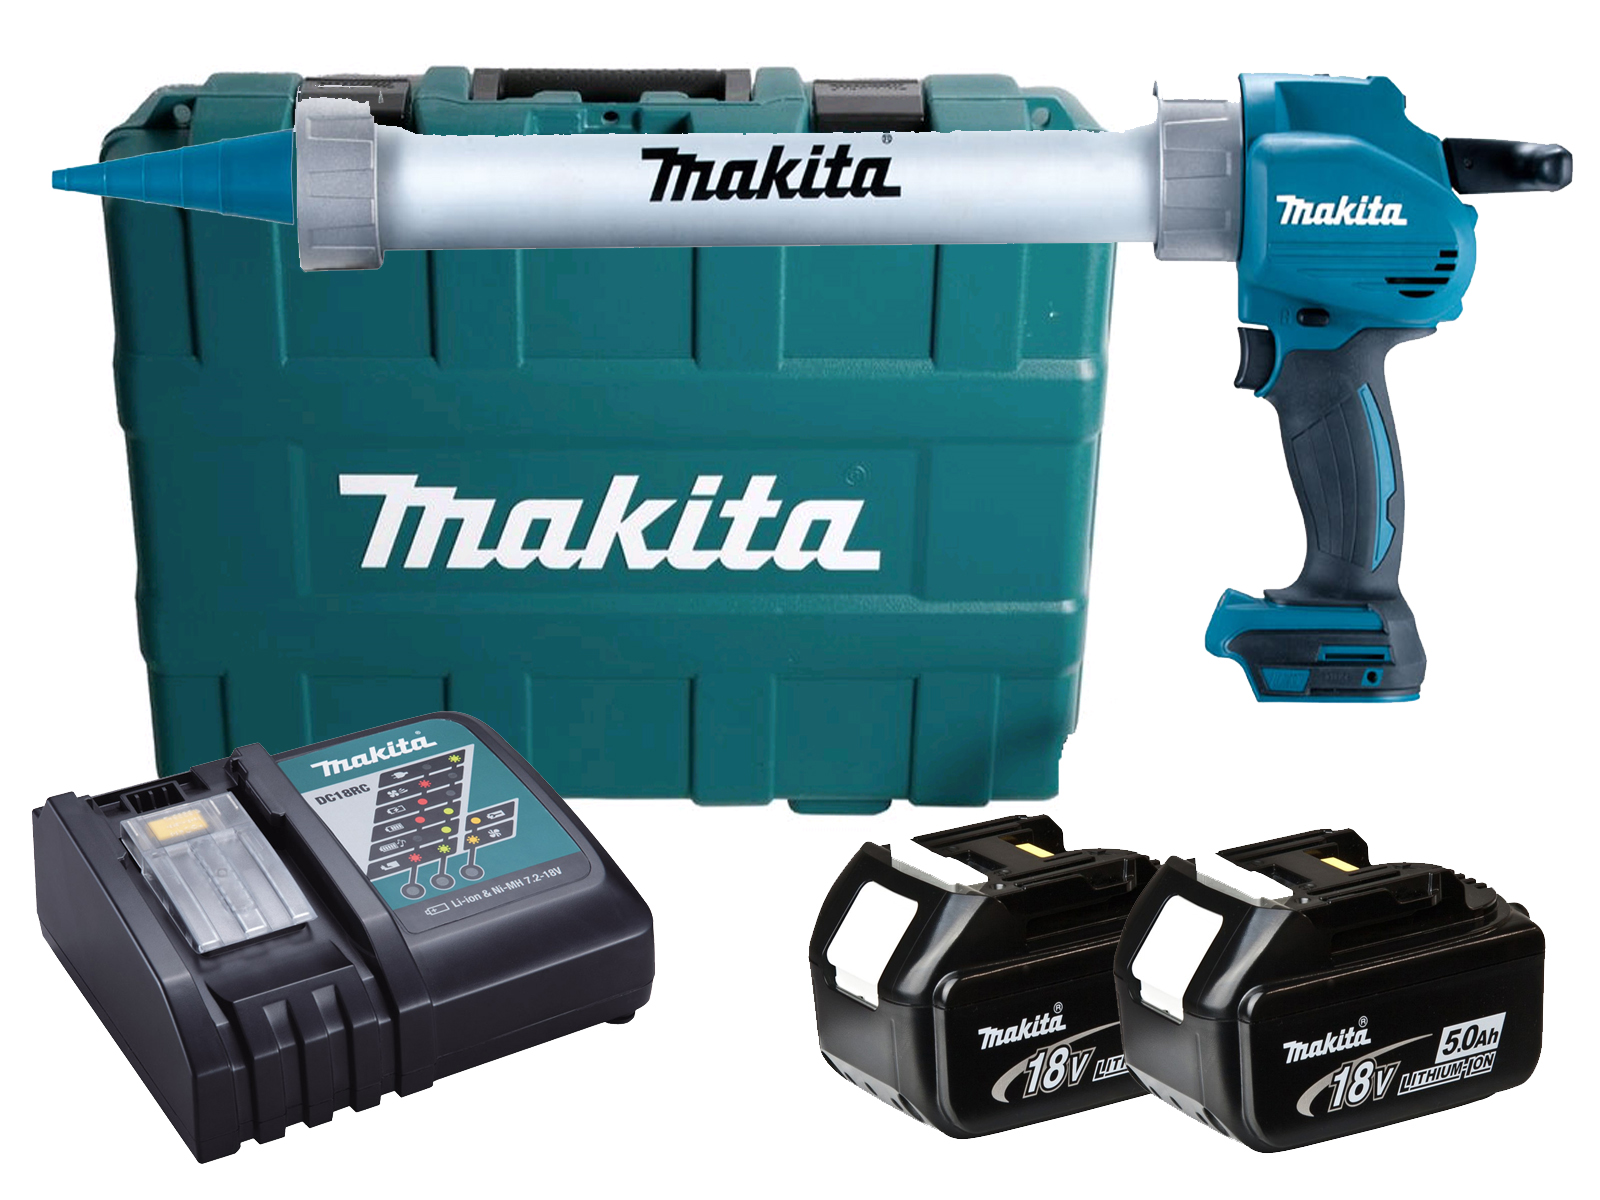 MAKITA 18V 600ML ALUMINIUM CAULKING GUN & CASE - DCG180 - 5.0AH PACK